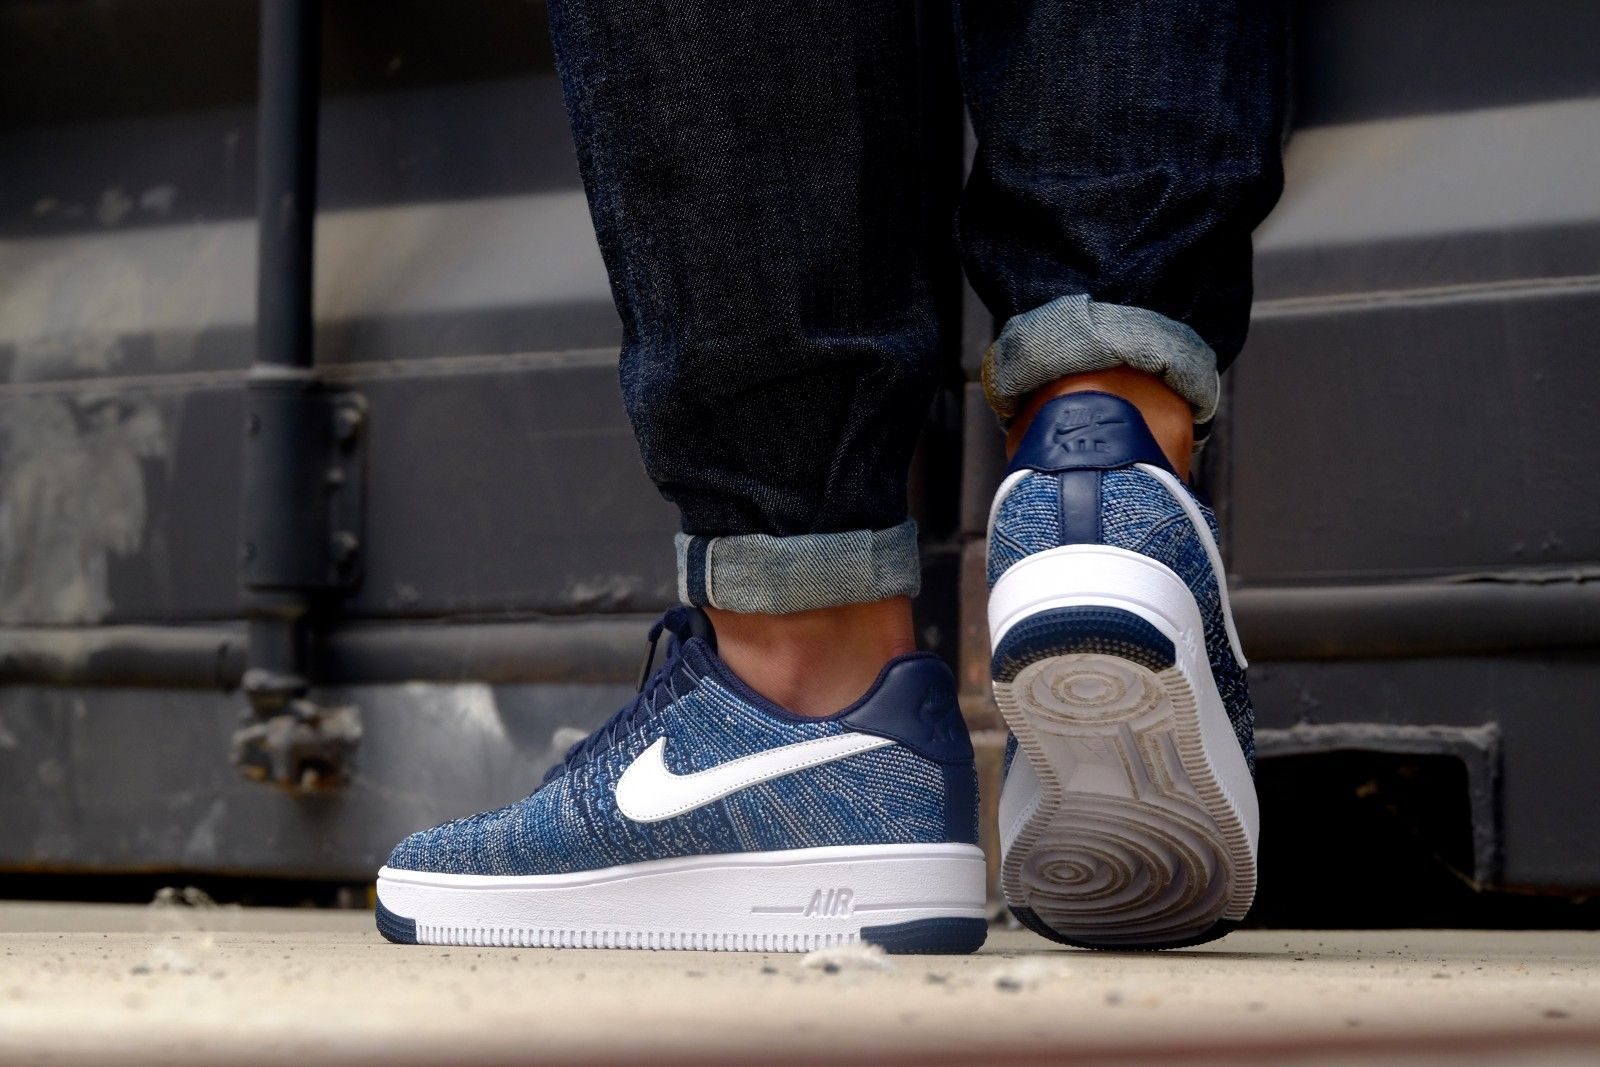 9b0f38eec6e38 Nike Air Force 1 Ultra Flyknit Low Obsidian  White-Star Pure Platinum -  817419